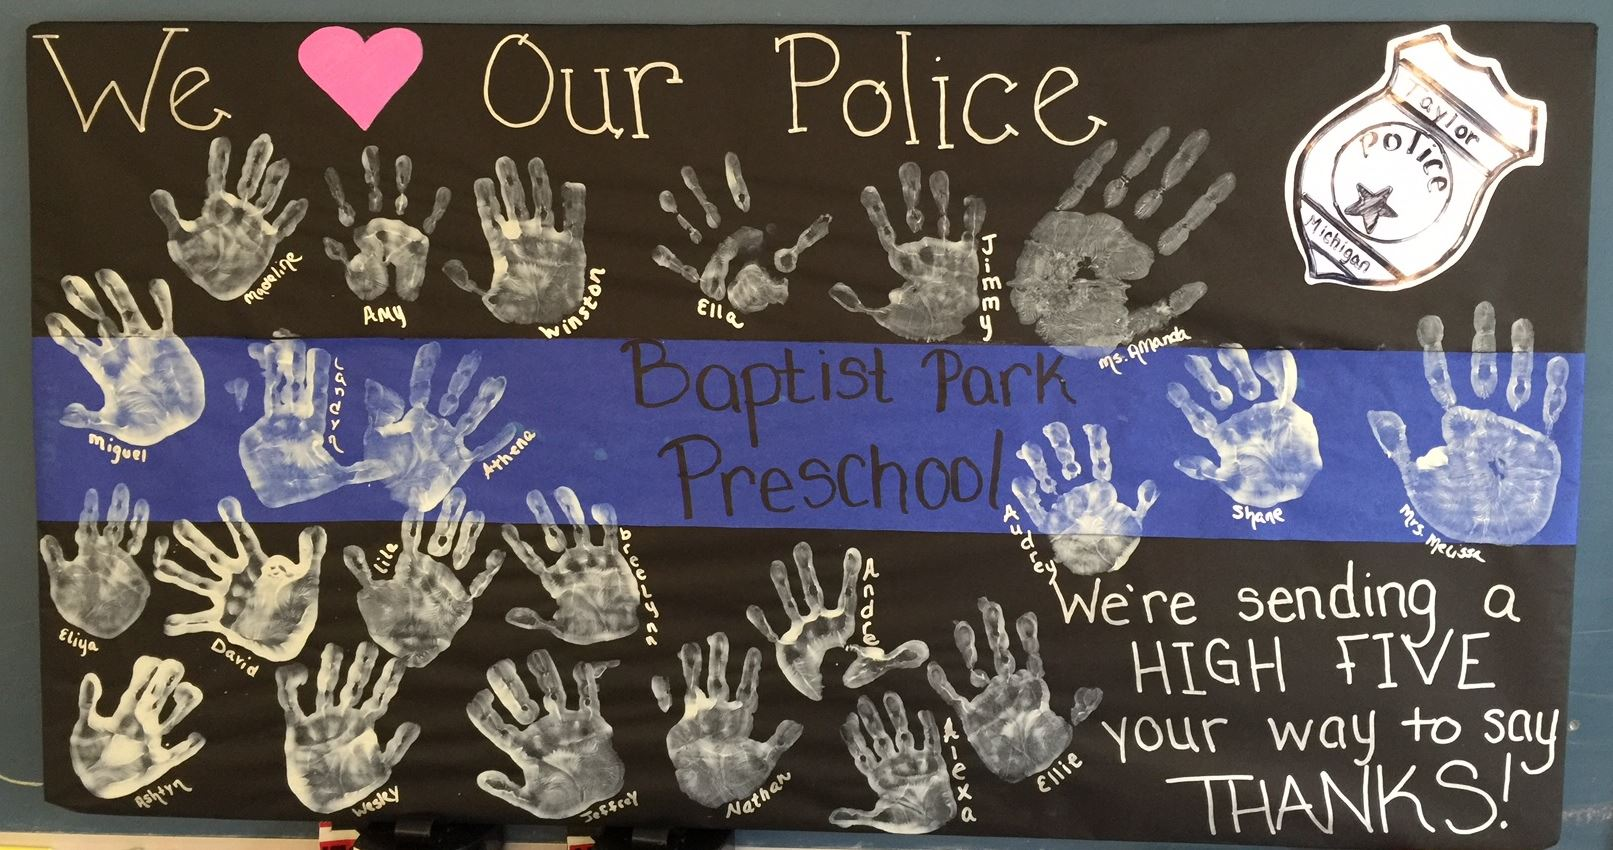 Baptist Park School Hand Print Collage